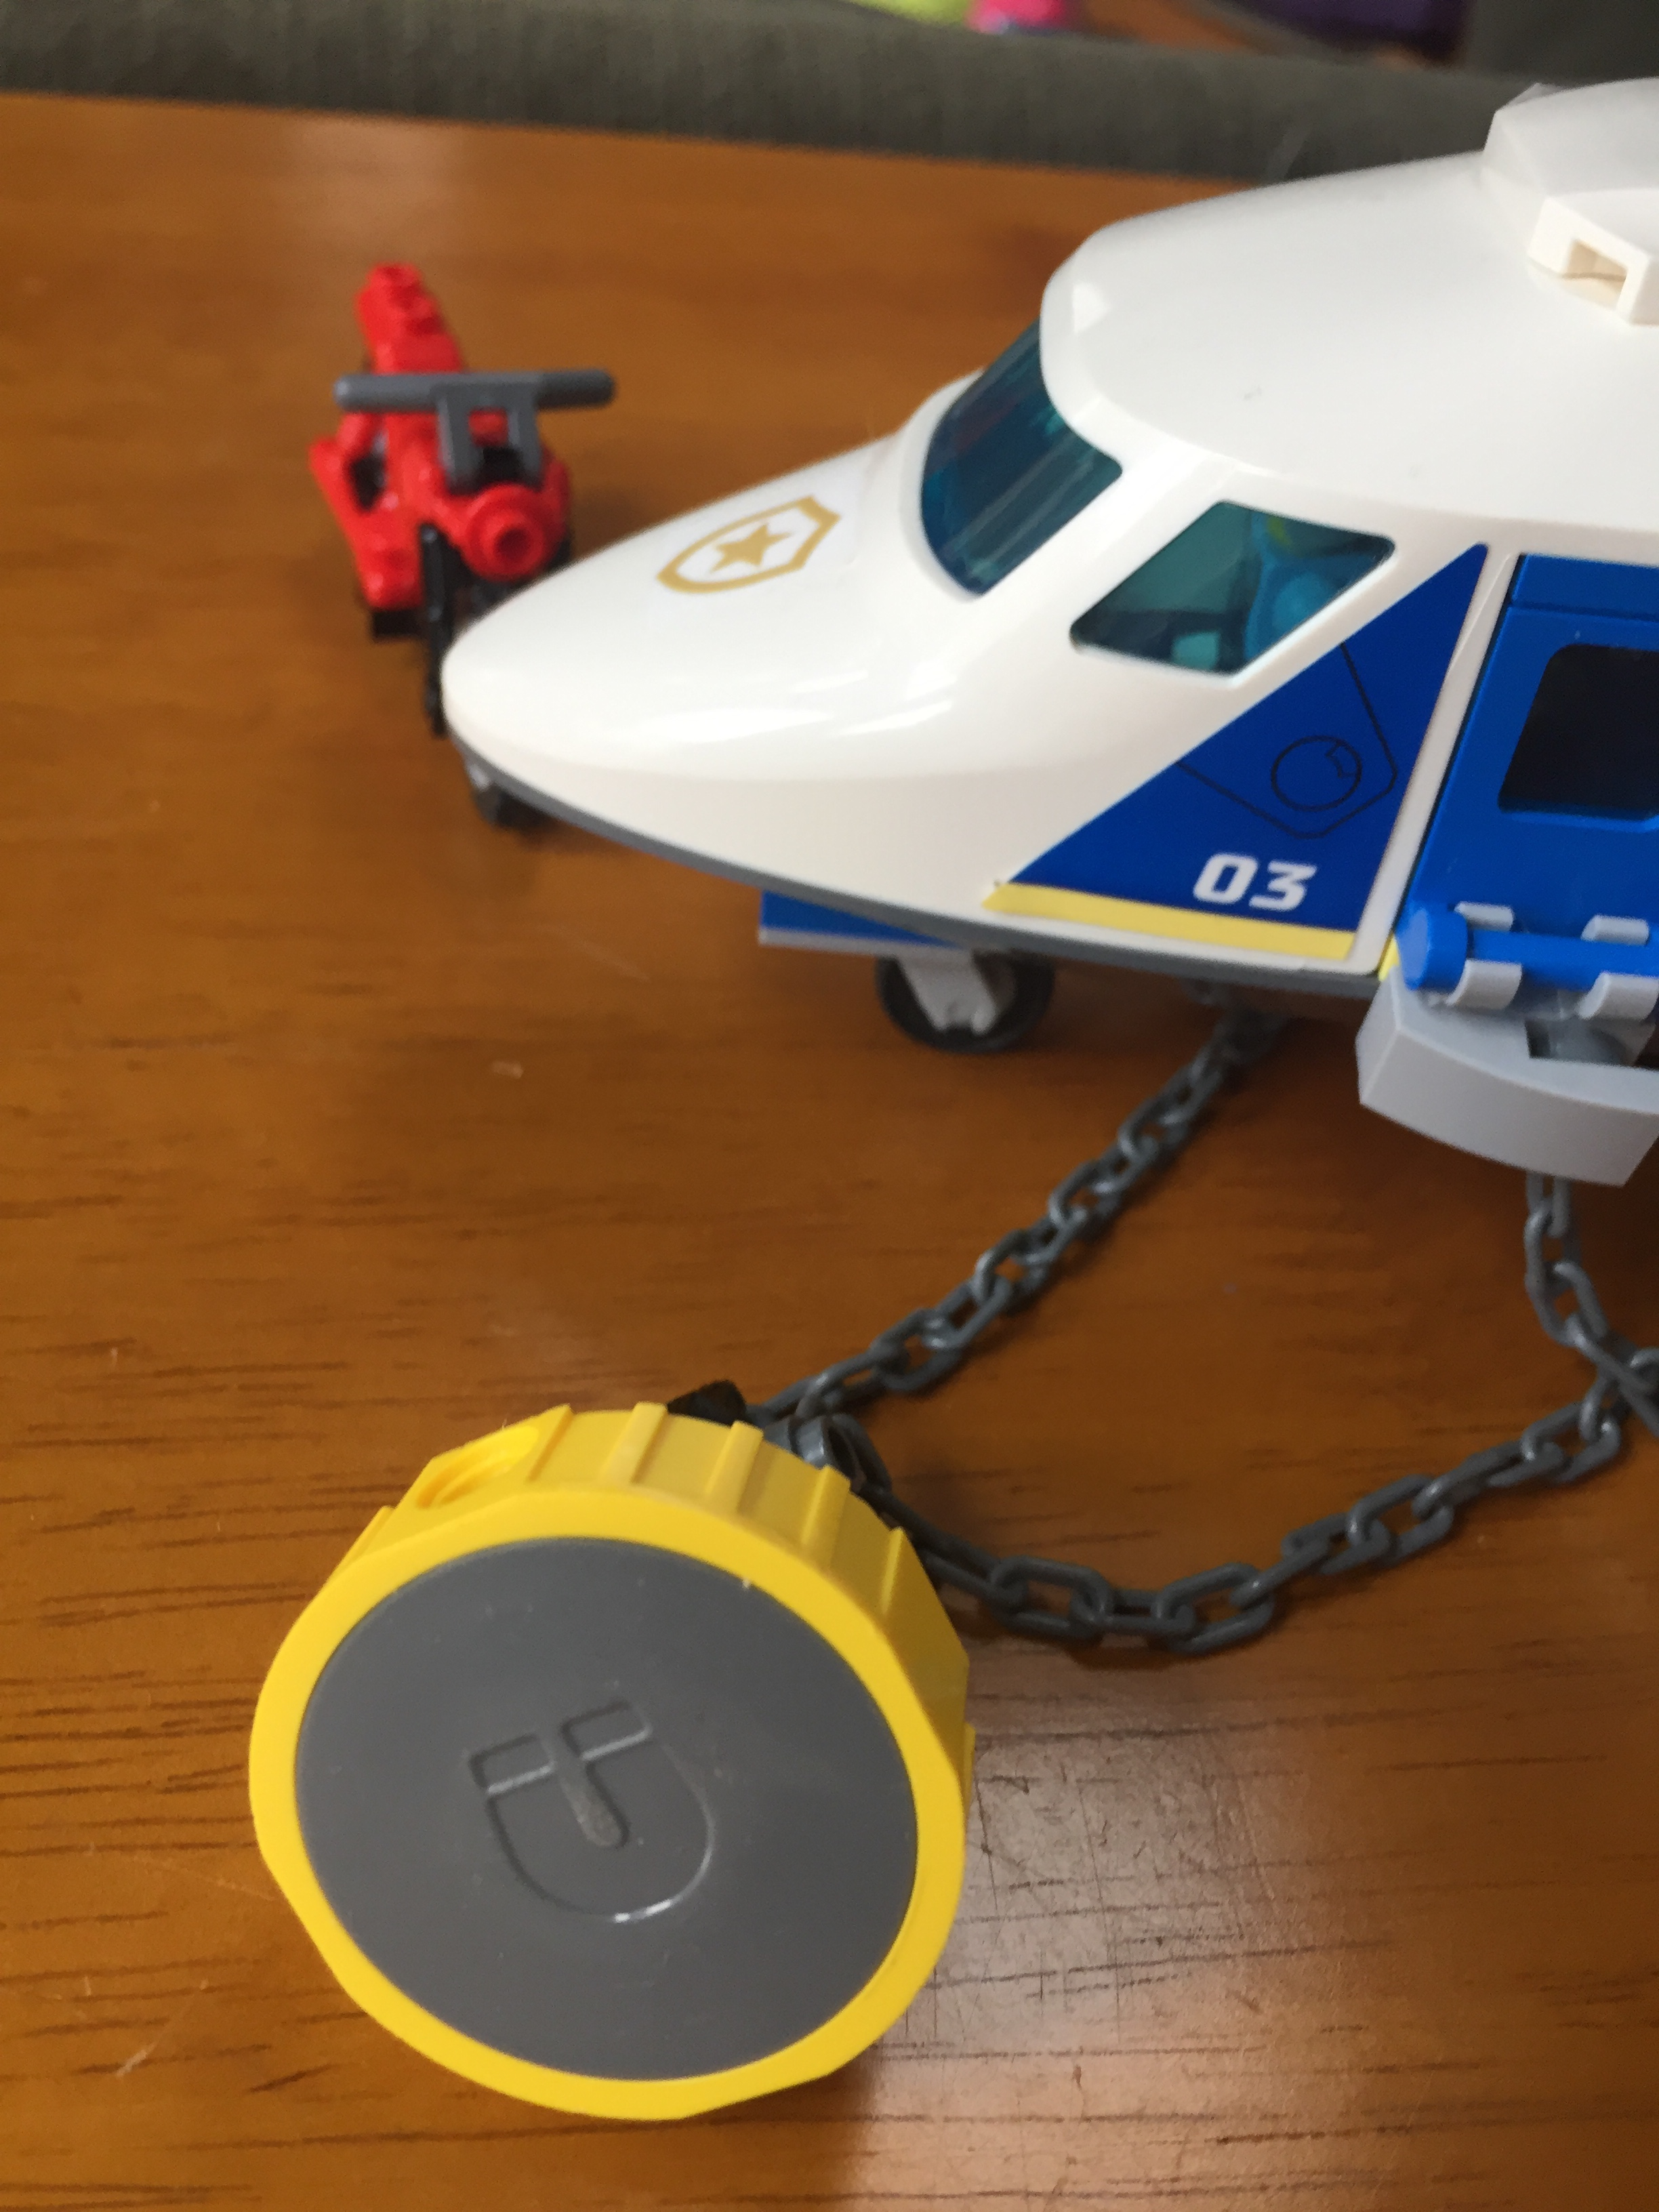 Lego helicopter police chase play set showing magnet attached to chain